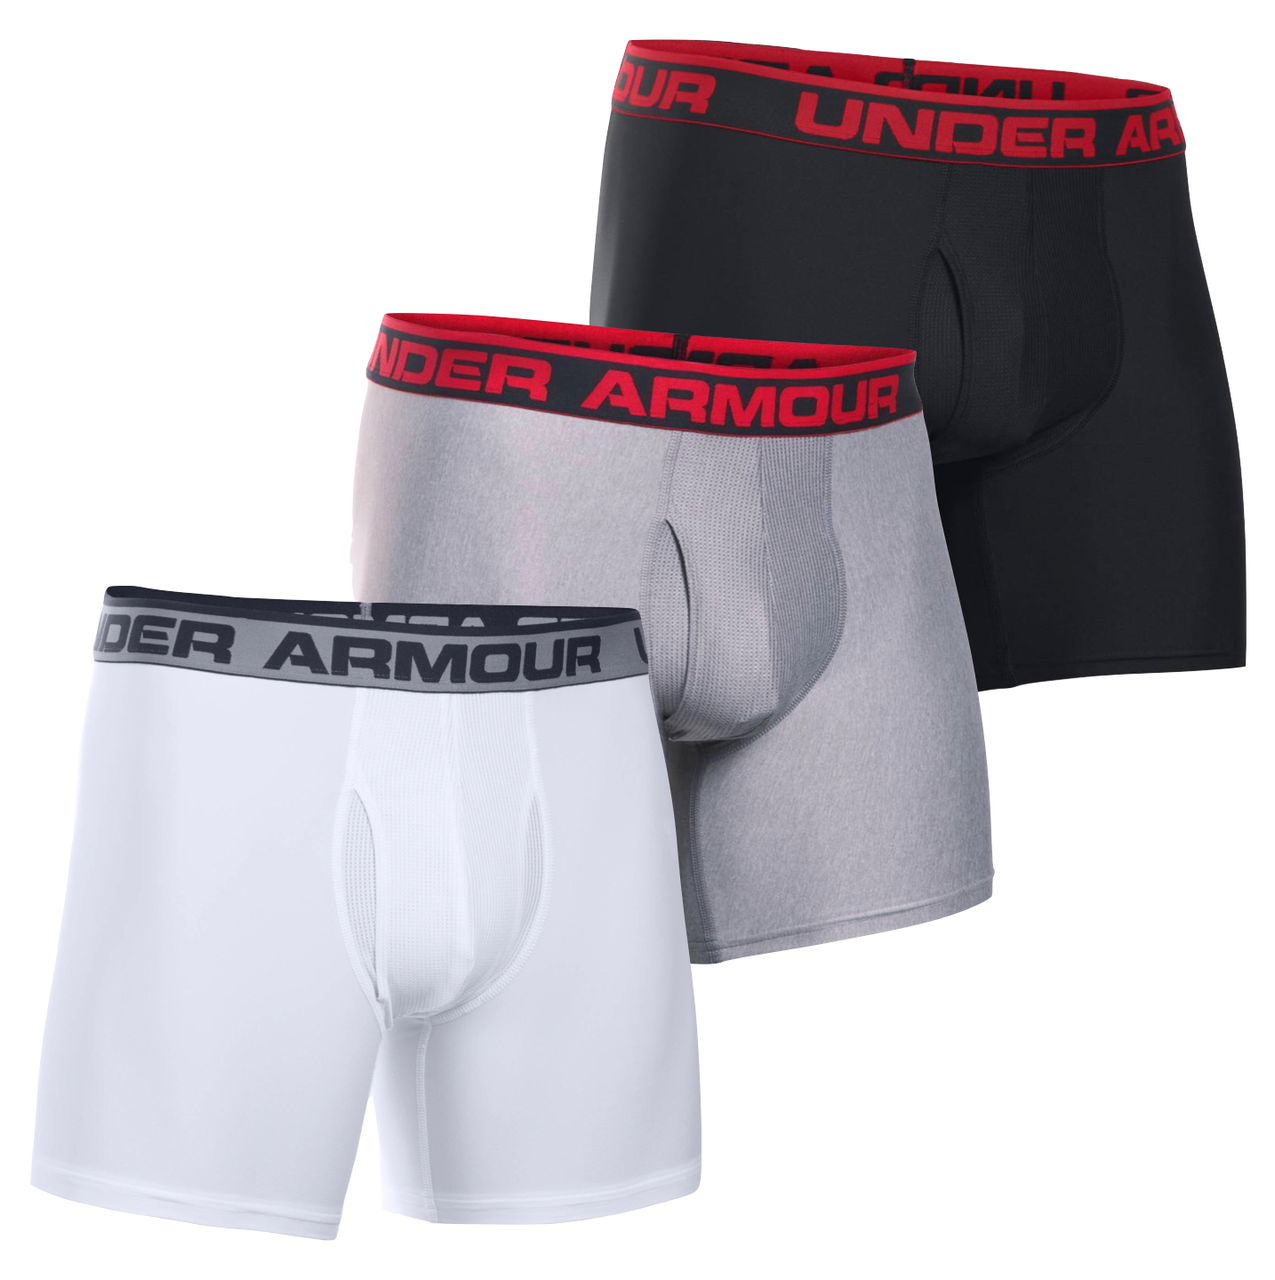 88c6fd851612b Under Armour 1277238 Mens Original Series 6